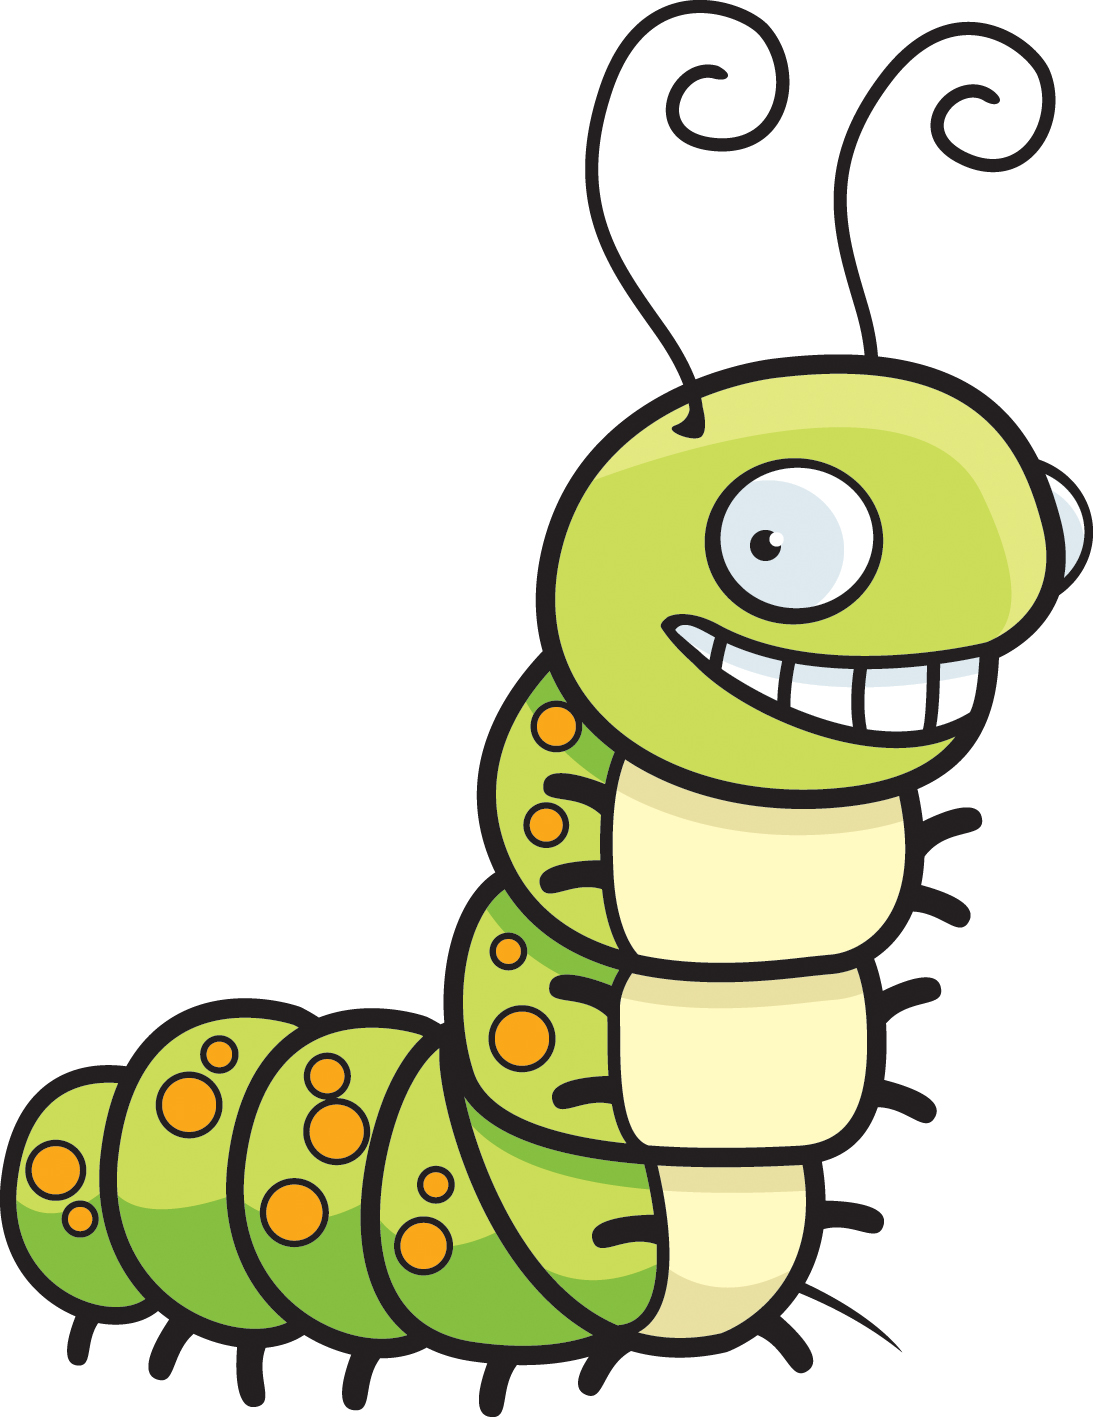 The Hungry Caterpillar Clipart At Getdrawings Com Free For